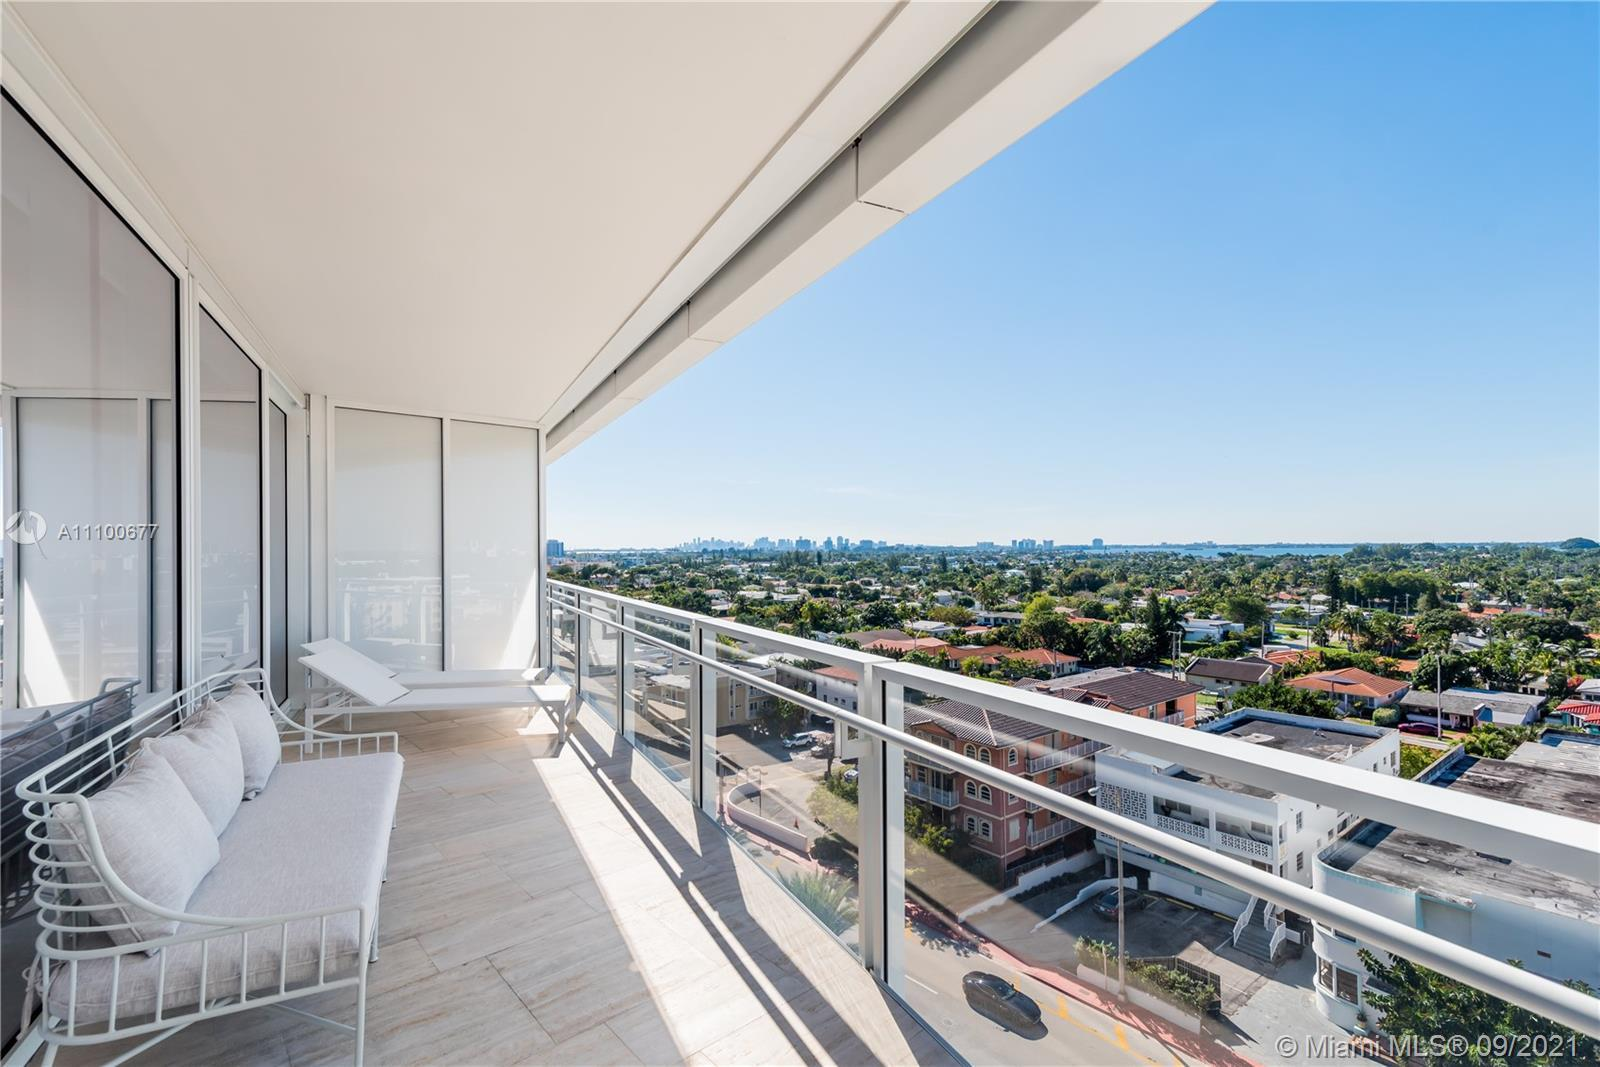 Enjoy Four Seasons Living from this wonderful 1 Bedroom, Office, 1.5 Bathroom Residence at The Surf